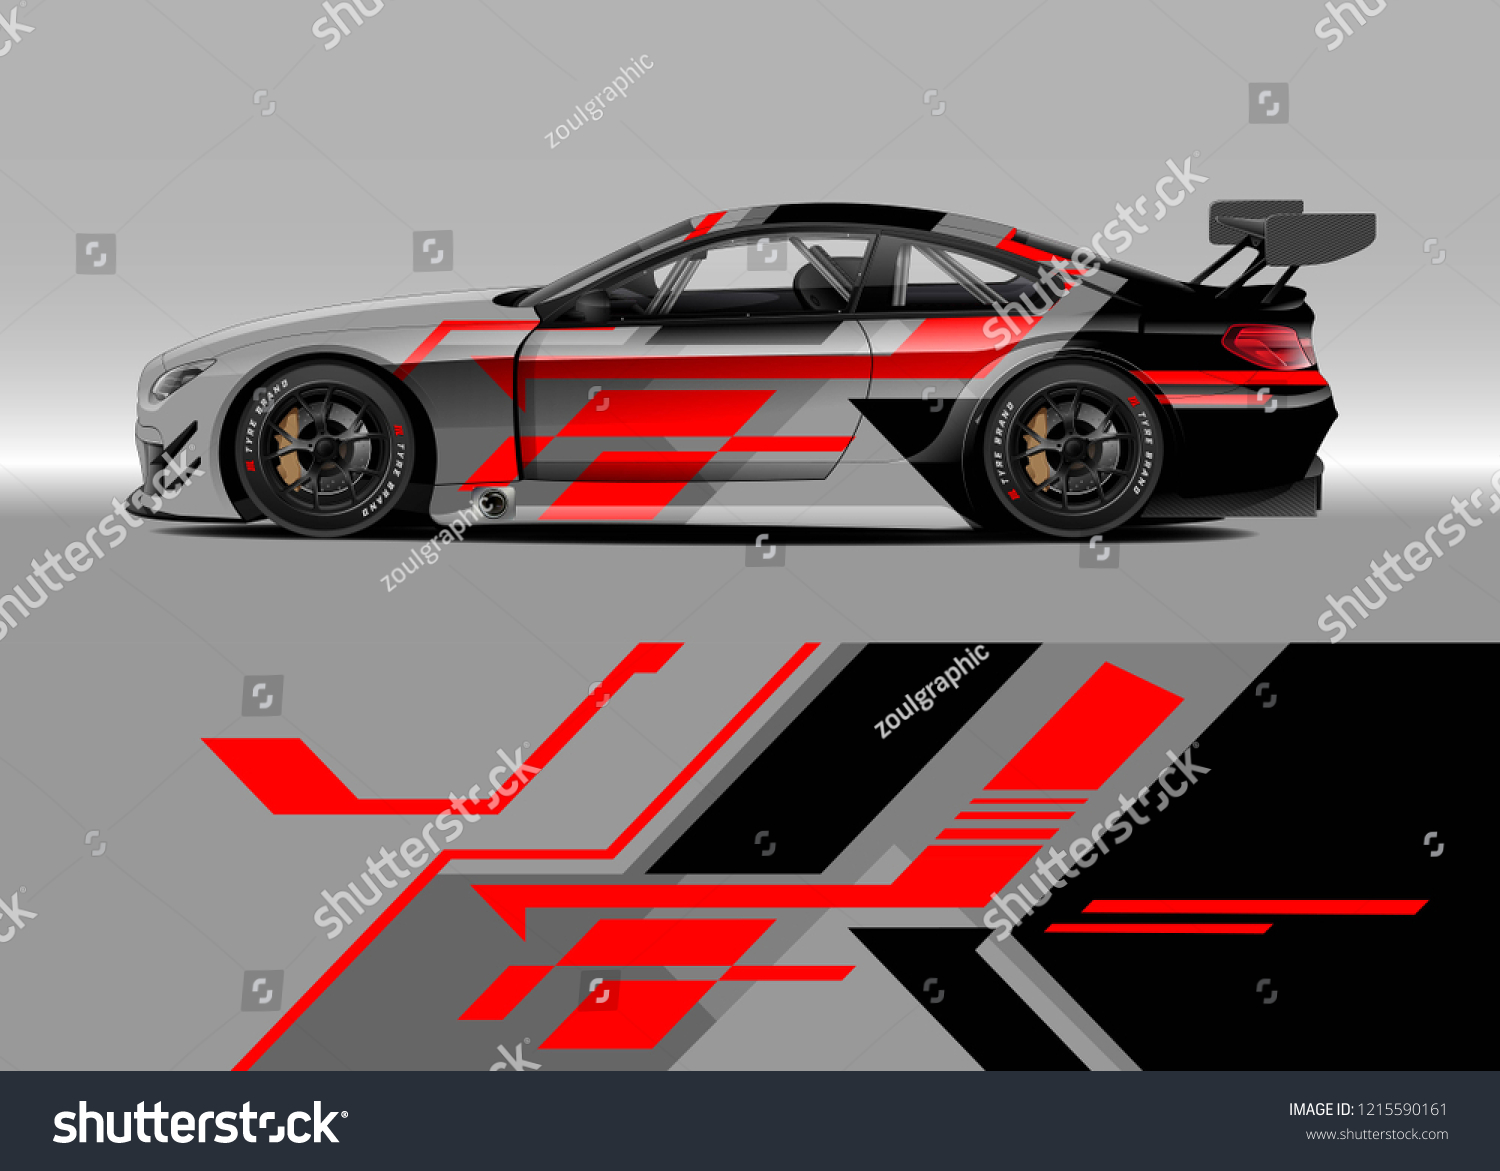 Racing car wrap design vector graphic abstract stripe racing background kit designs for wrap vehicle